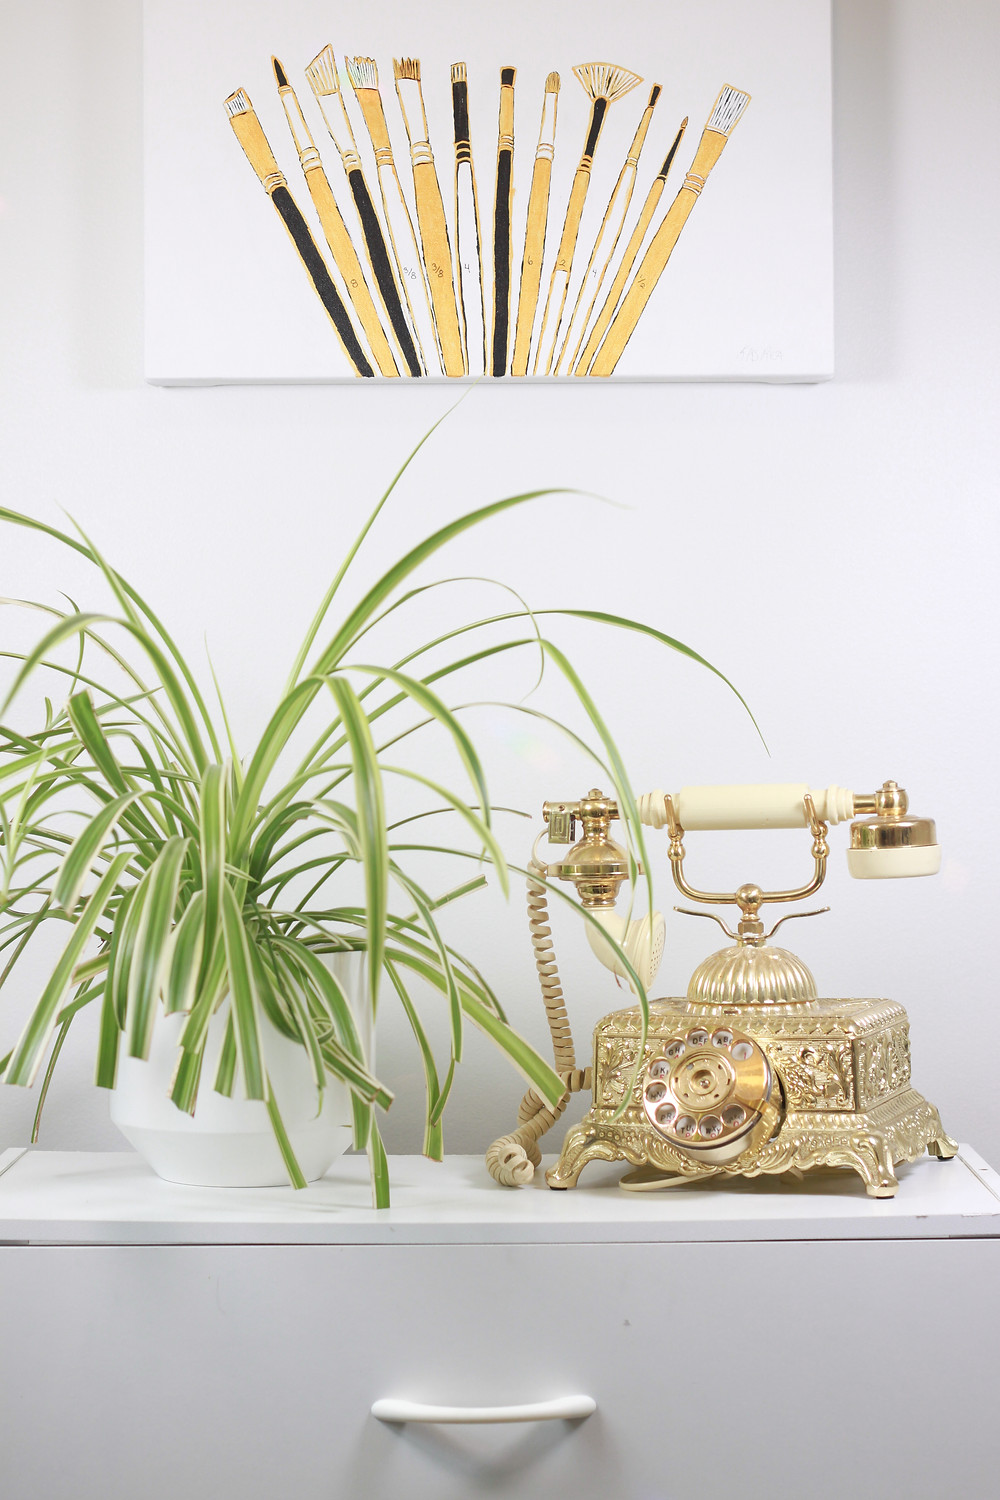 plant, spider plant, paint brushes, acrylic, painting, gold, antique phone, phone, antique, office, art studio, studio, work space, white, clean, elegant, interior design, creative space, Saskatoon, artwork, Kas Rea, Kas Rea Visual Arts, drawer, classy